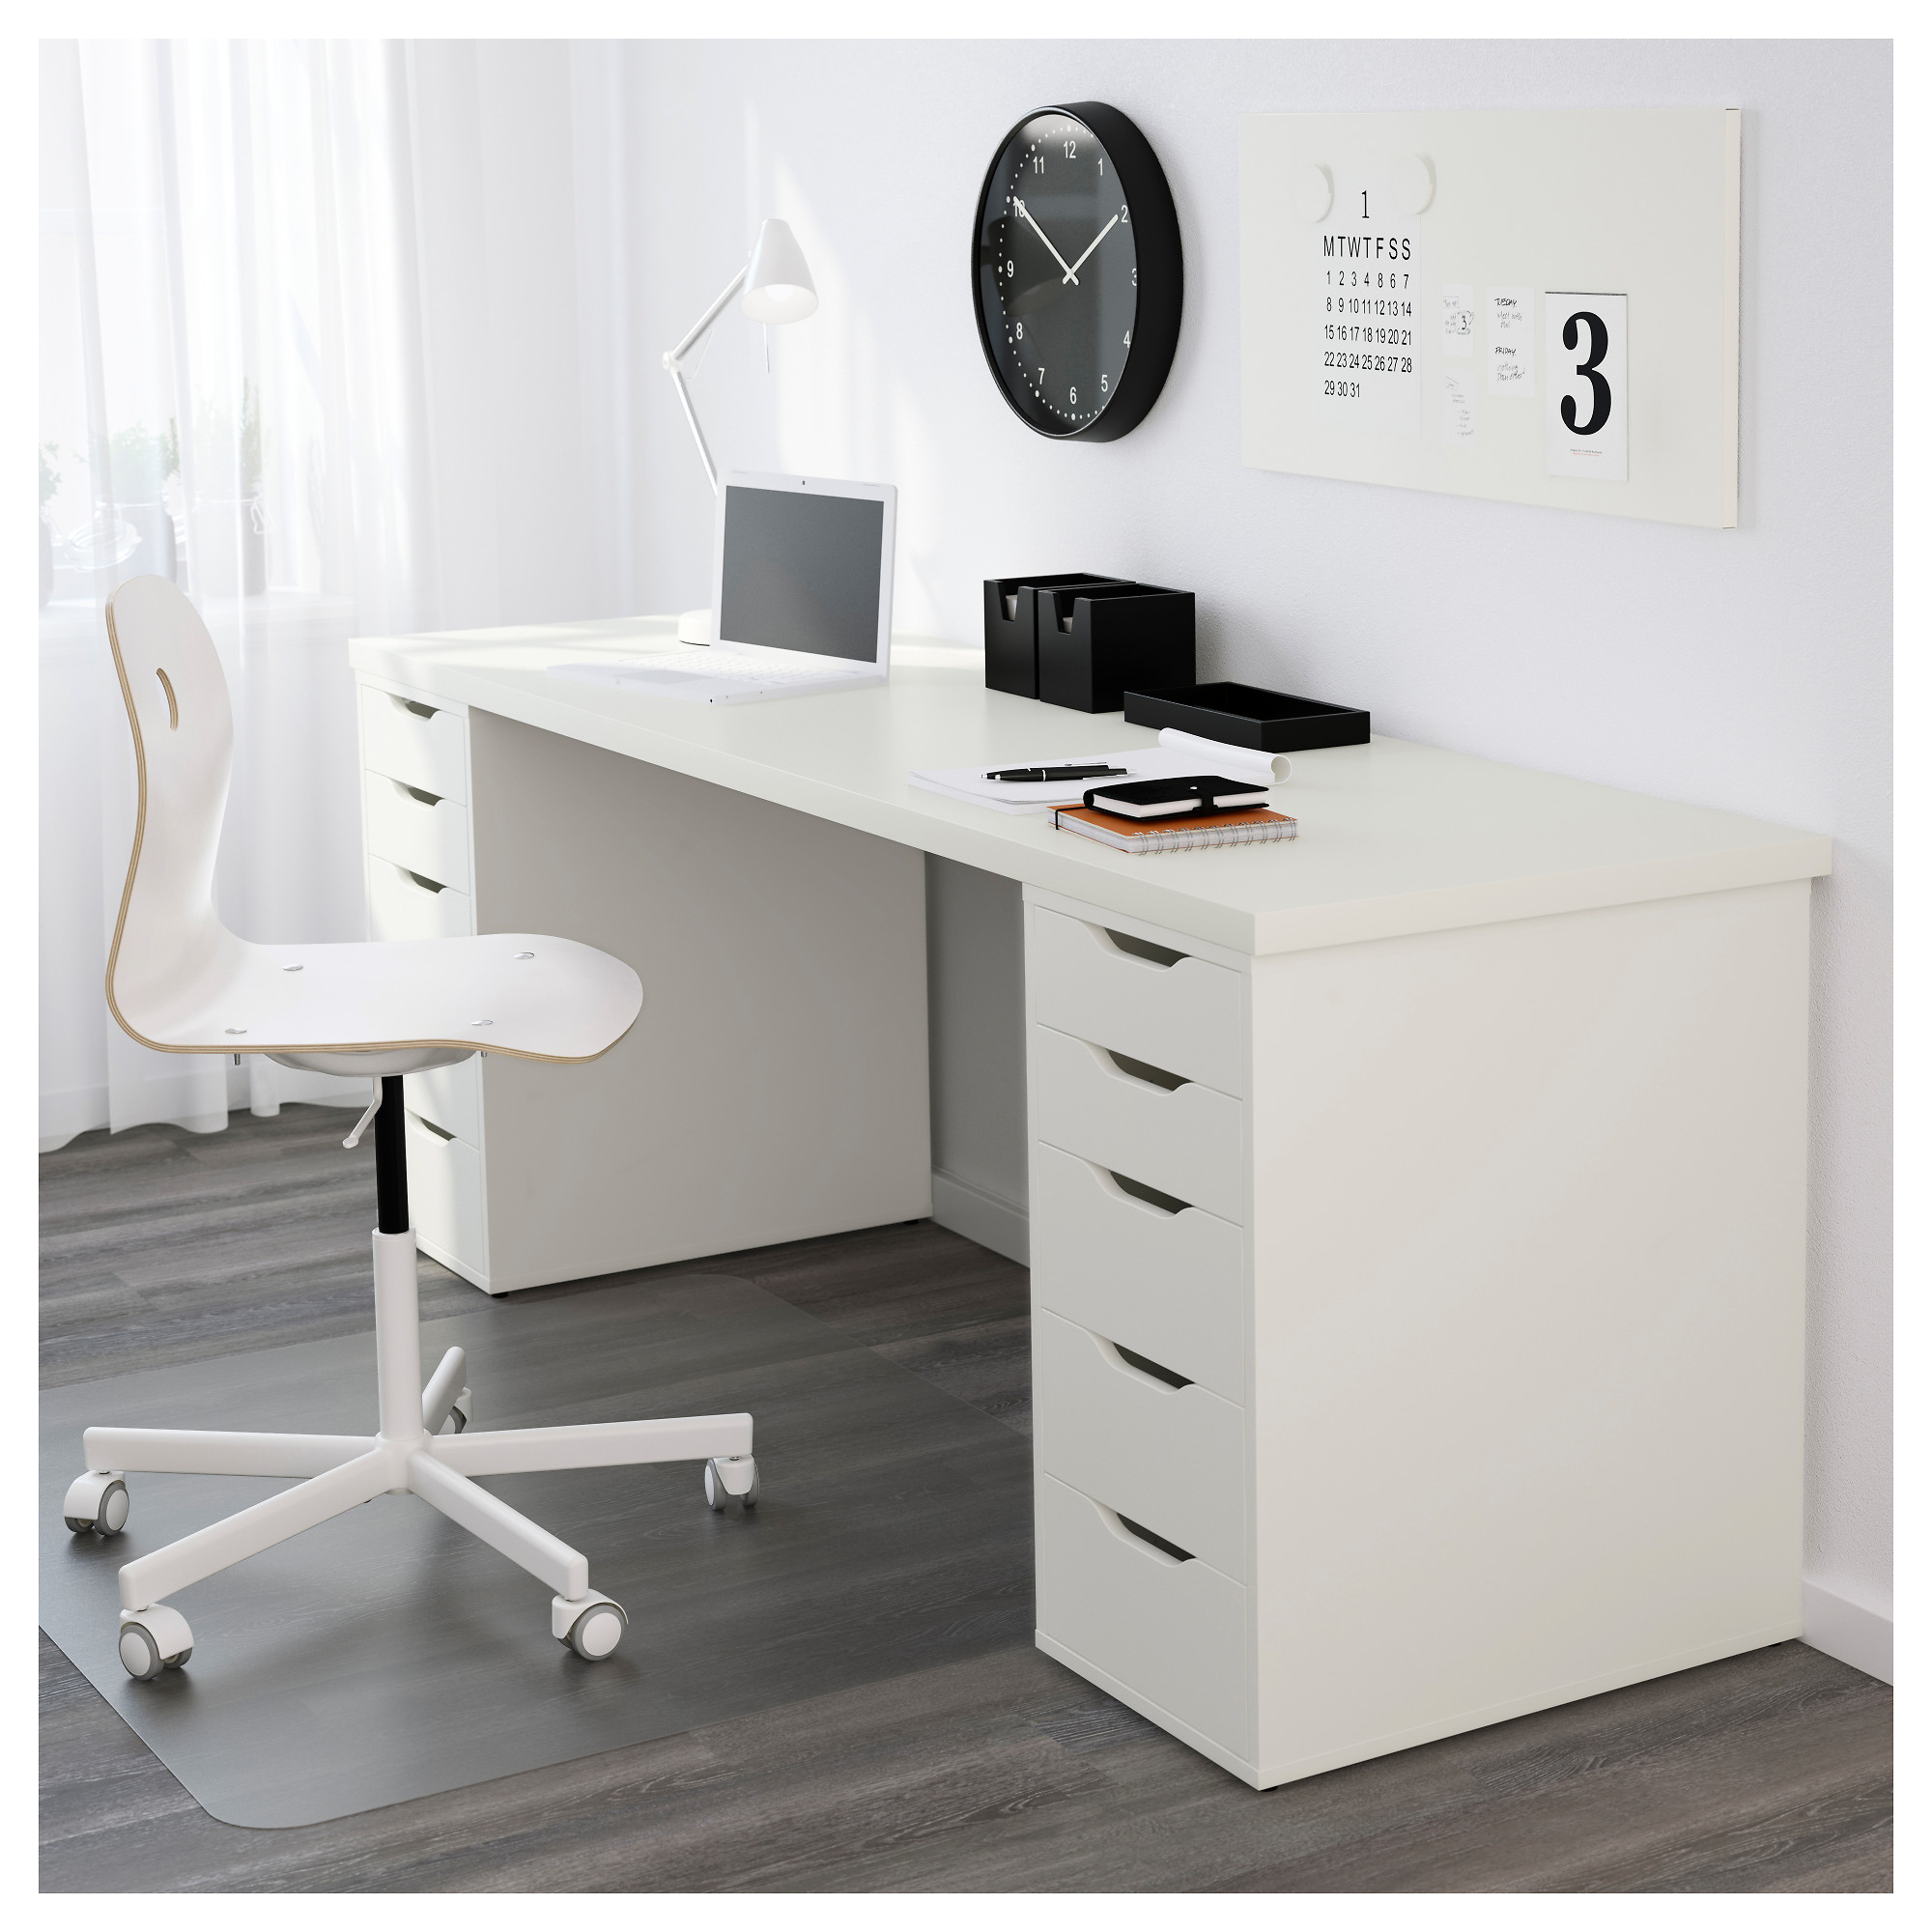 office diy desk alex lito co two ikeahack makeover long person supply lerberg for part linnmon ikea